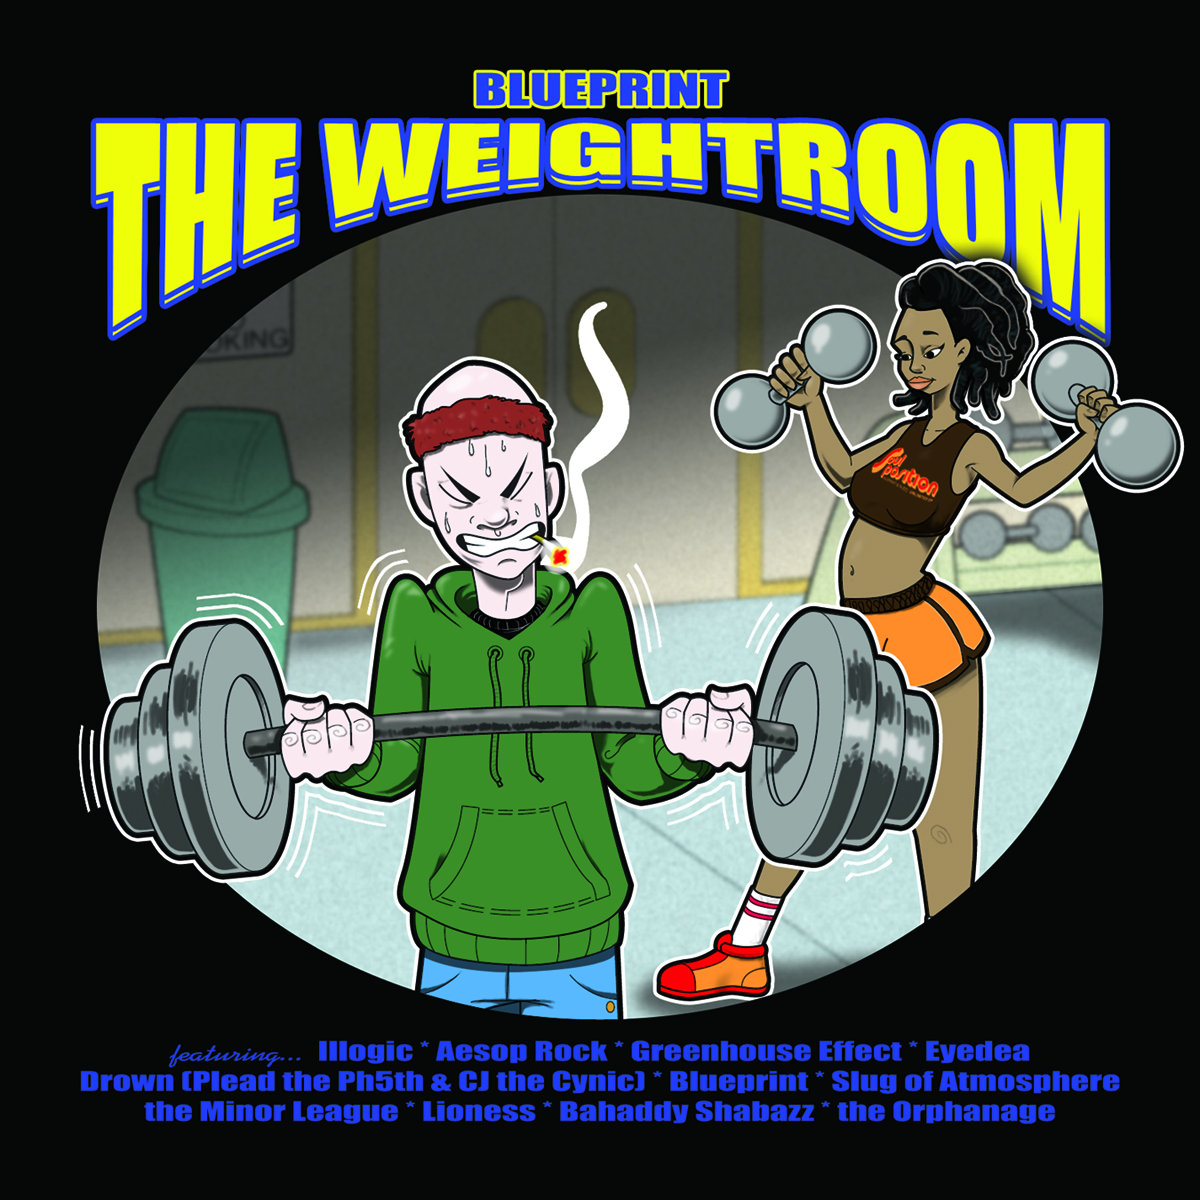 The proper education by greenhouse effect blueprint from the weight room by blueprint malvernweather Image collections